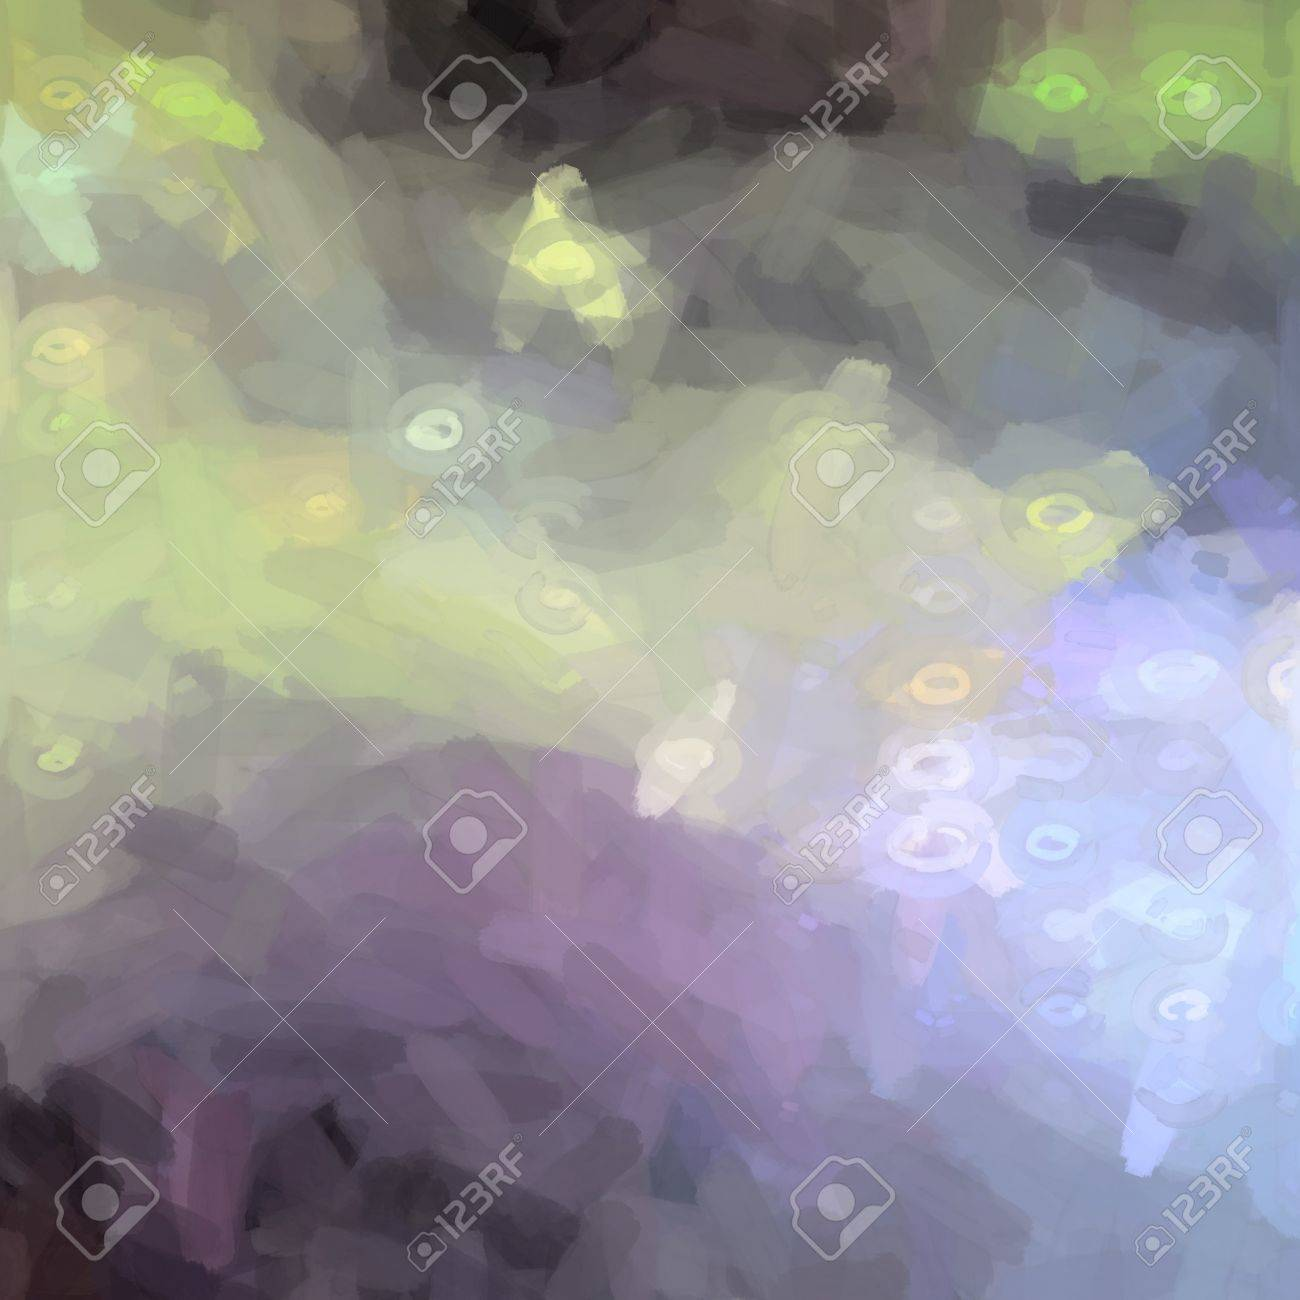 Colorful watercolor background. Abstract watercolour background paper design of bright color splashes modern art painted canvas background texture atmosphere art. Stock Photo - 18587527